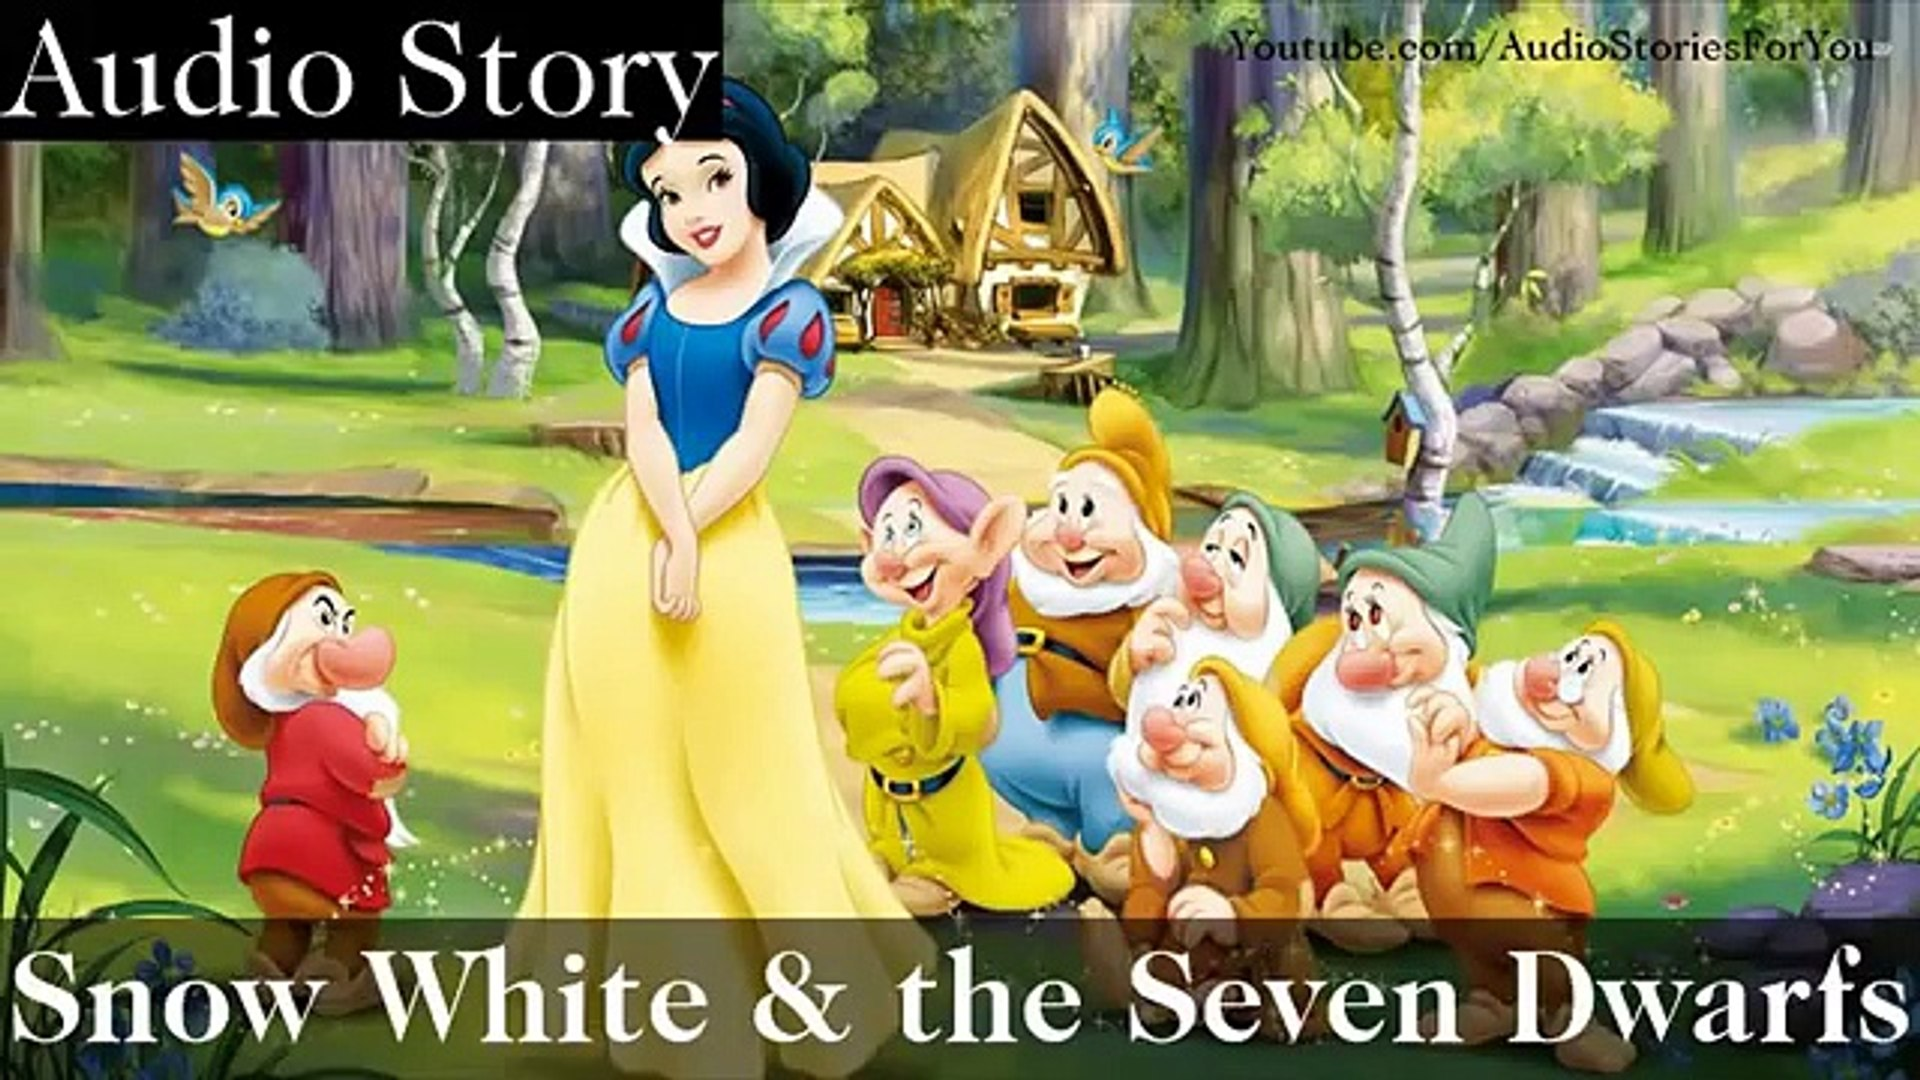 Stories For Kids Snow White and the Seven Dwarfs Audio Books, Short Stories